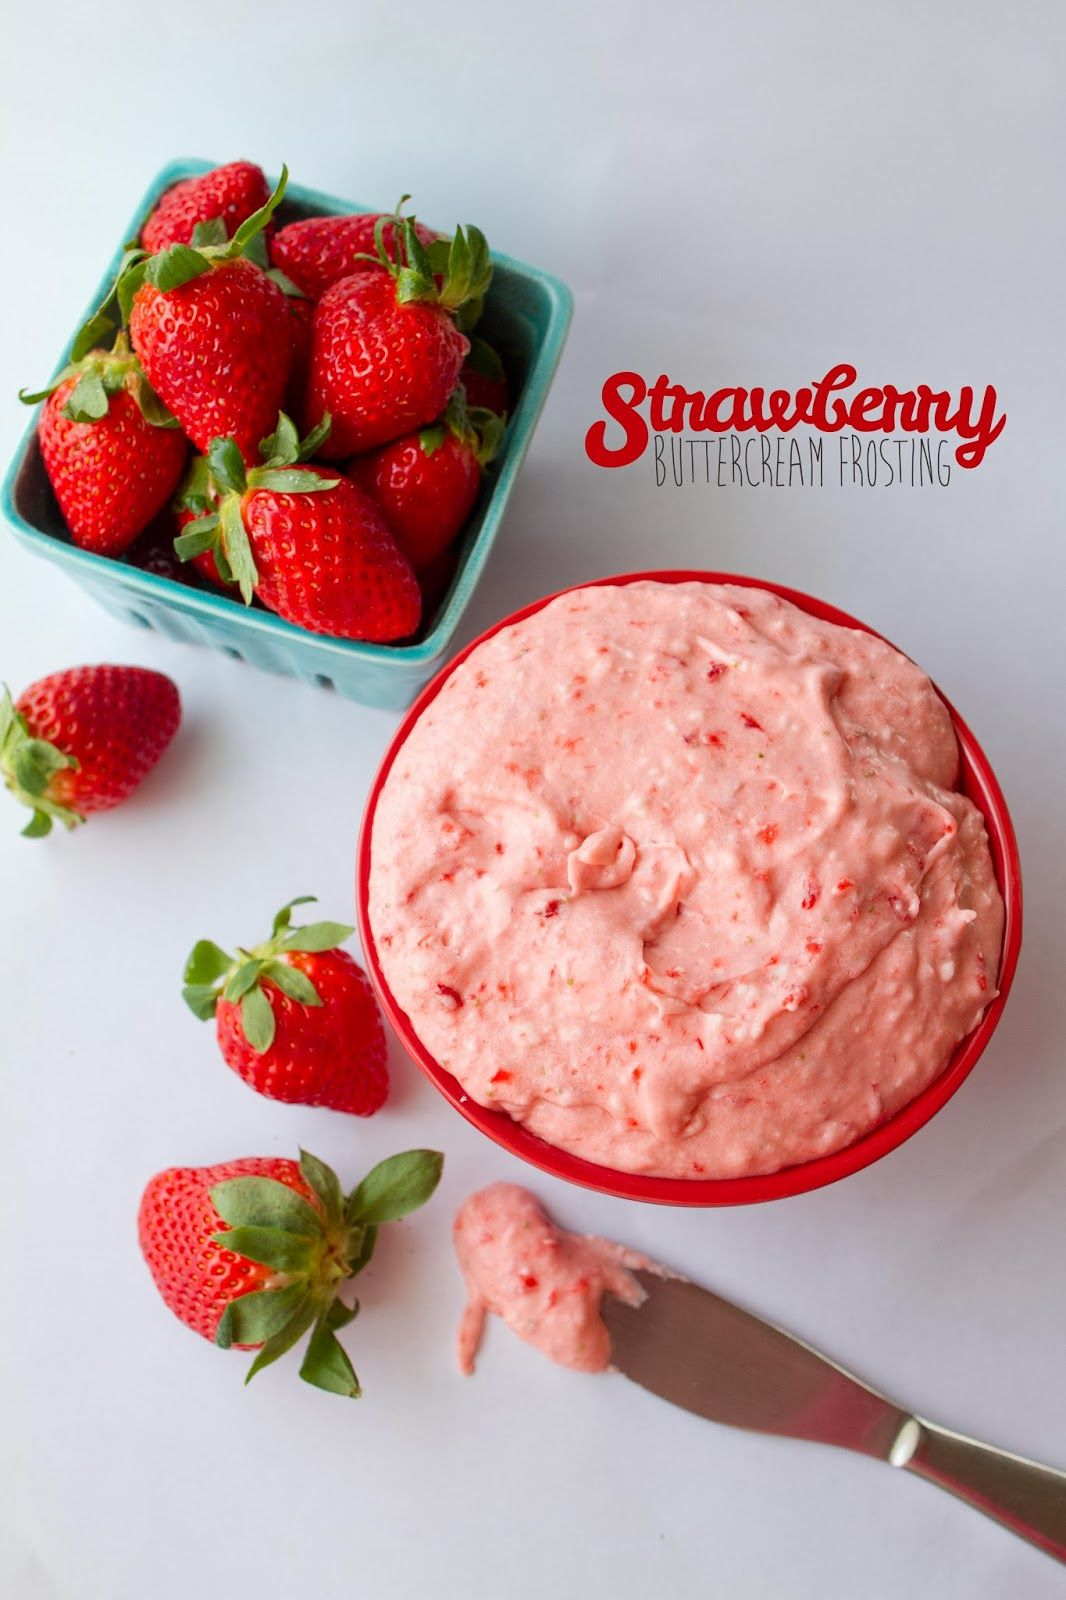 My Name Is Snickerdoodle: Strawberry Buttercream Frosting